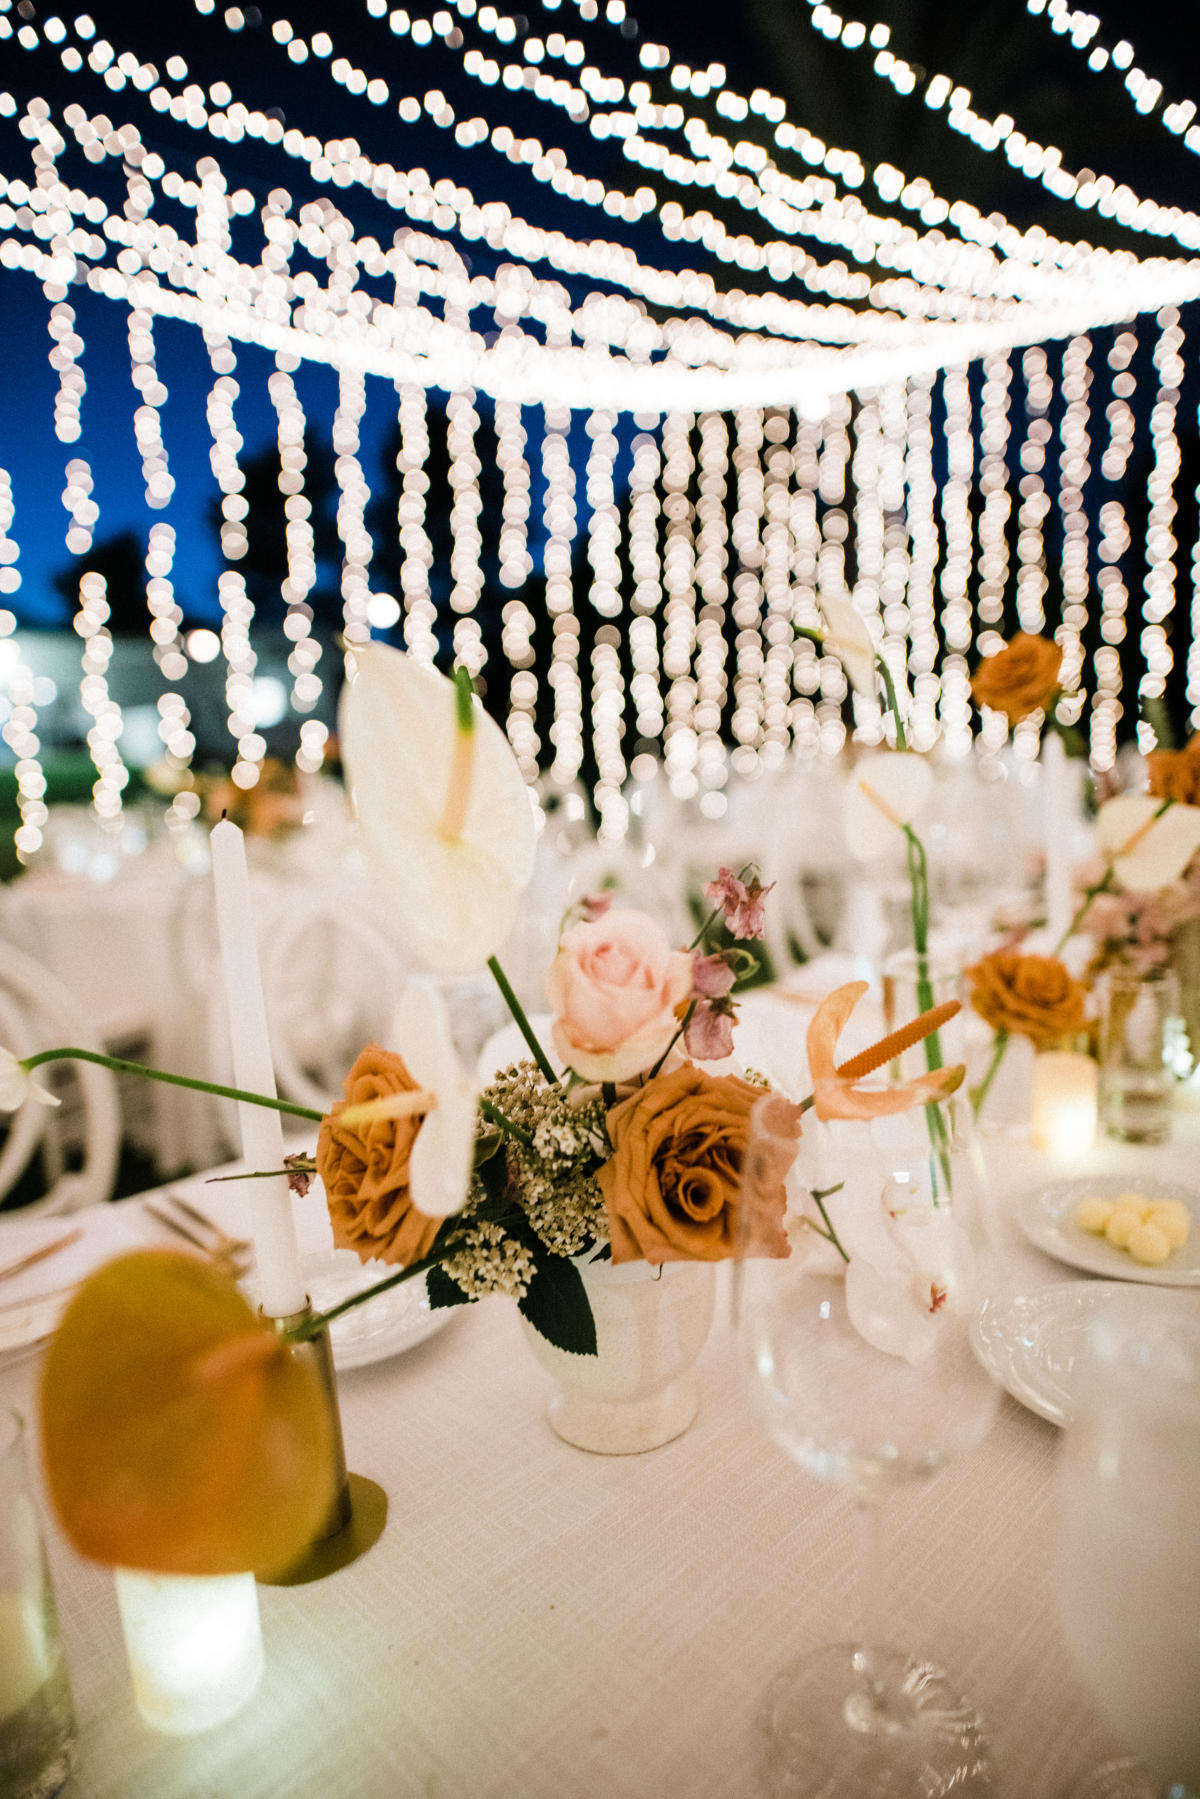 Arrangements Floral Party Design,How To Keep A House Clean With A Big Family